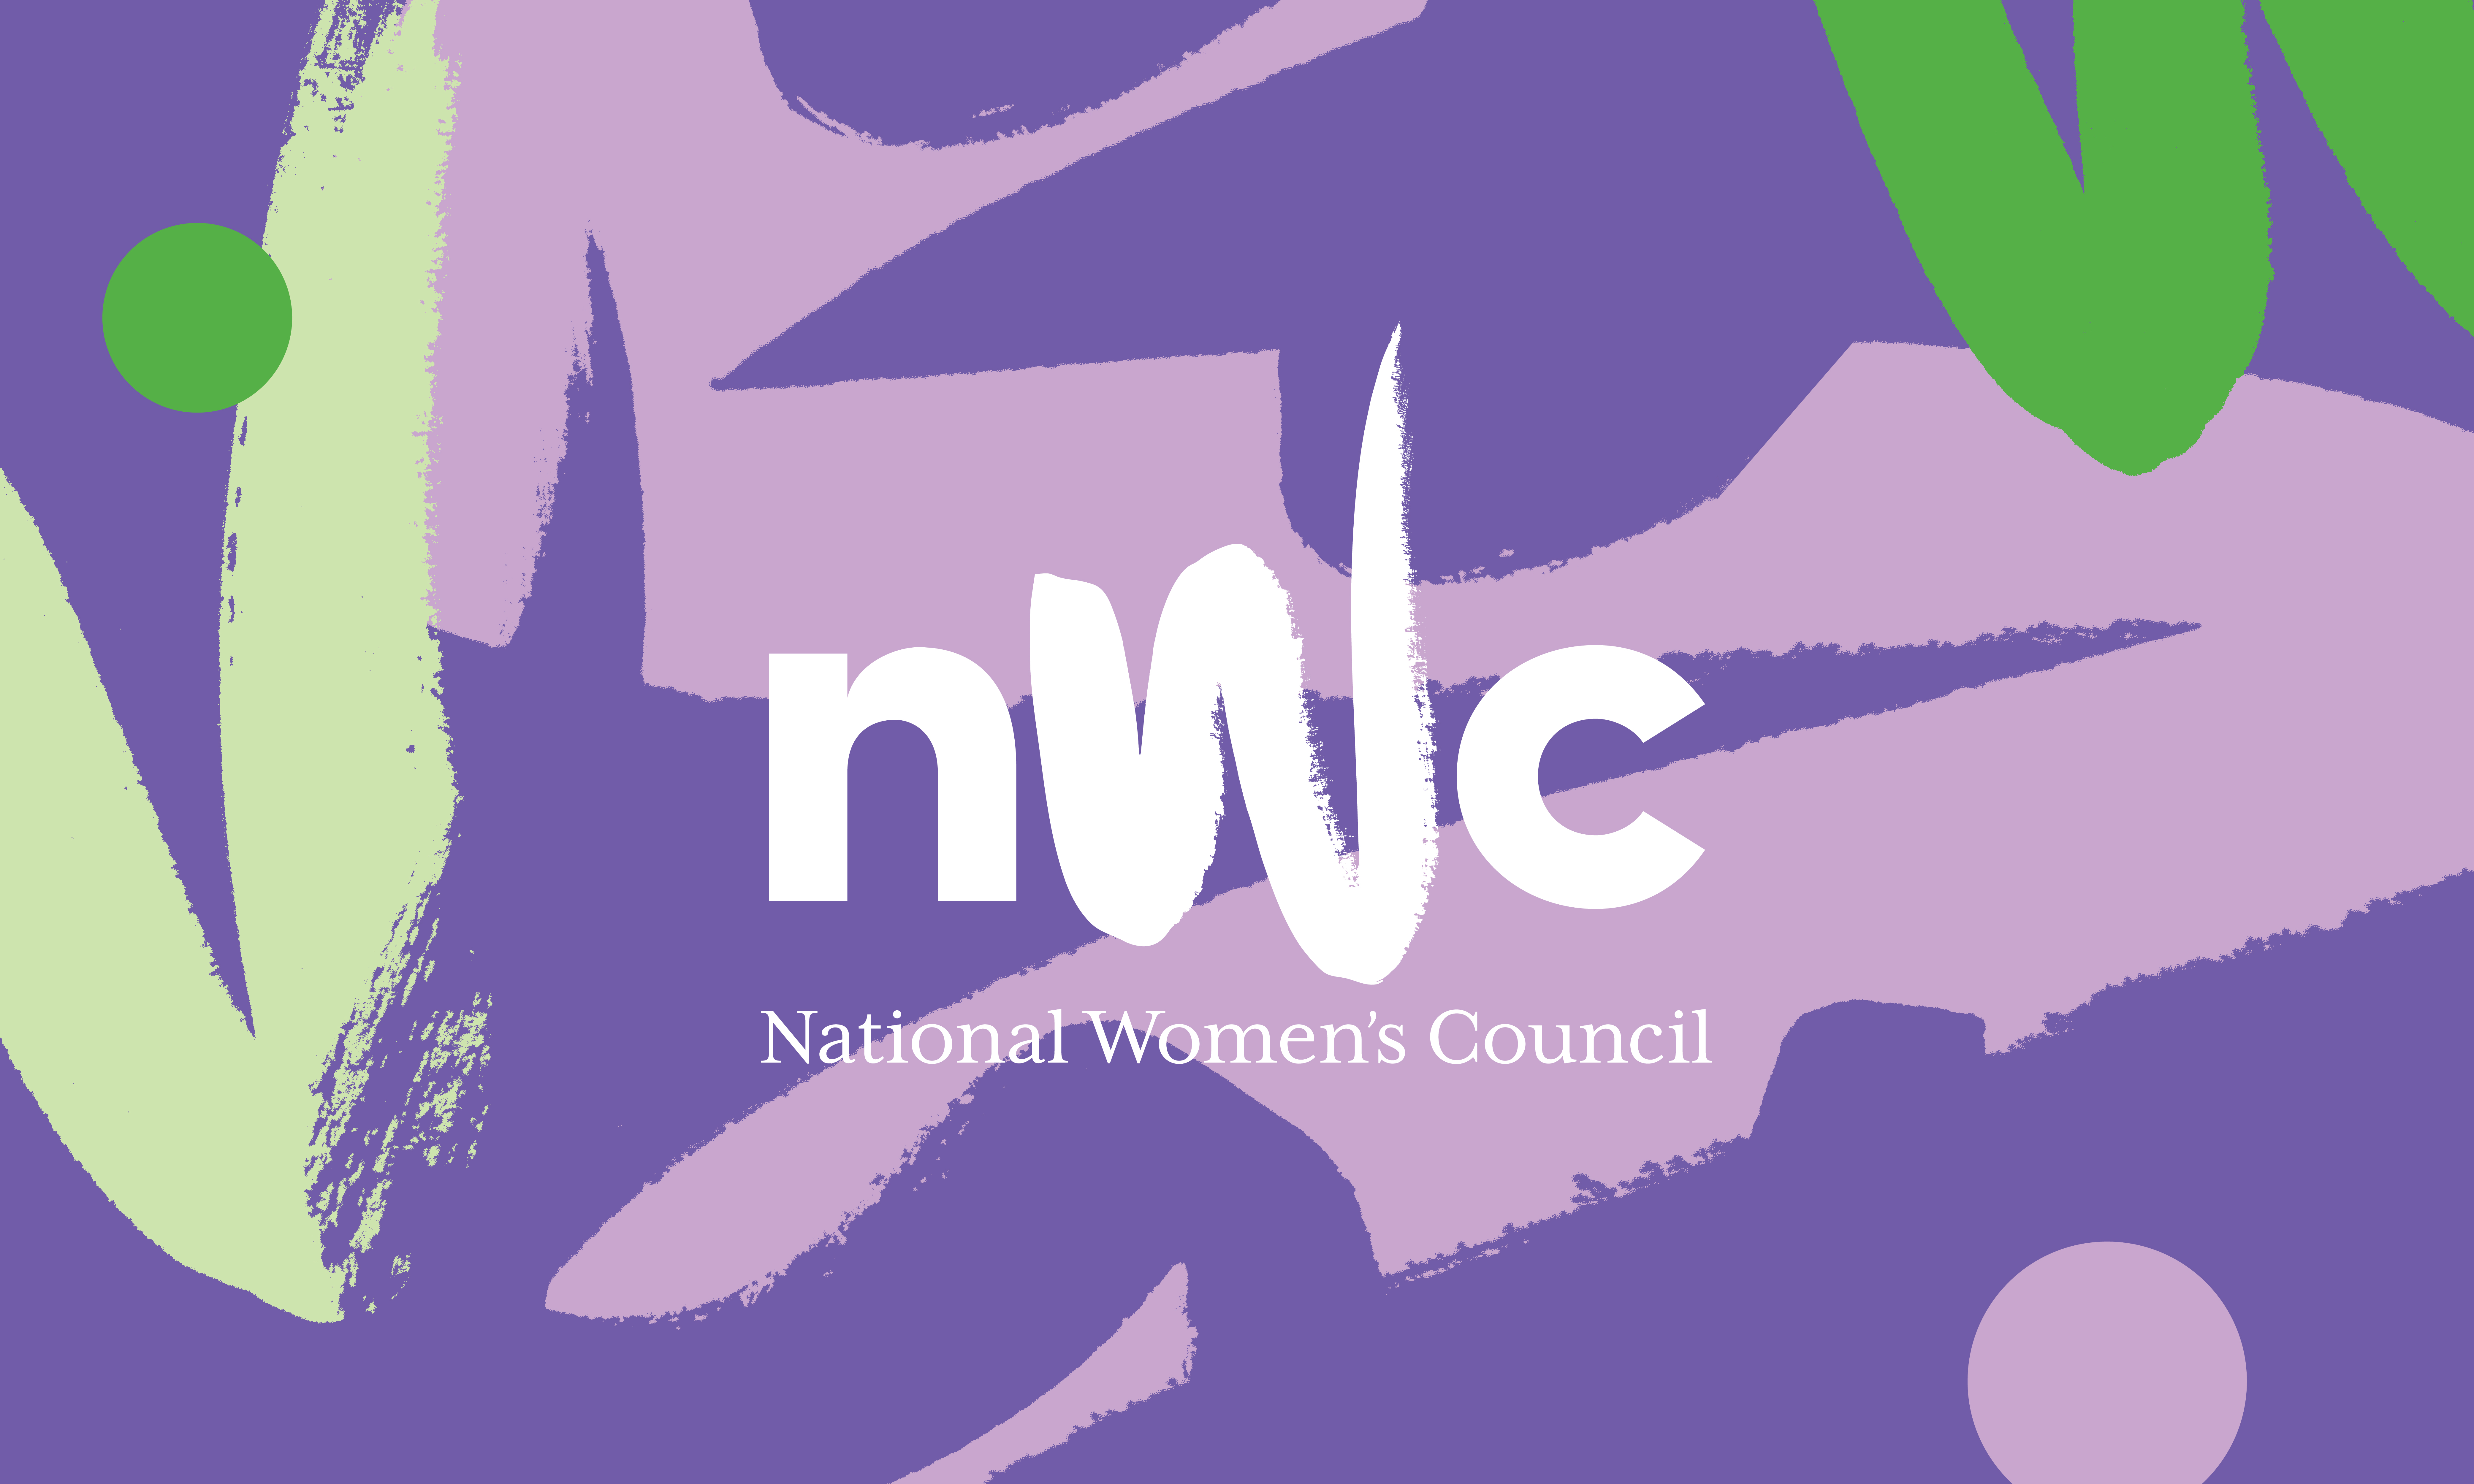 Cover image: National Women's Council Identity